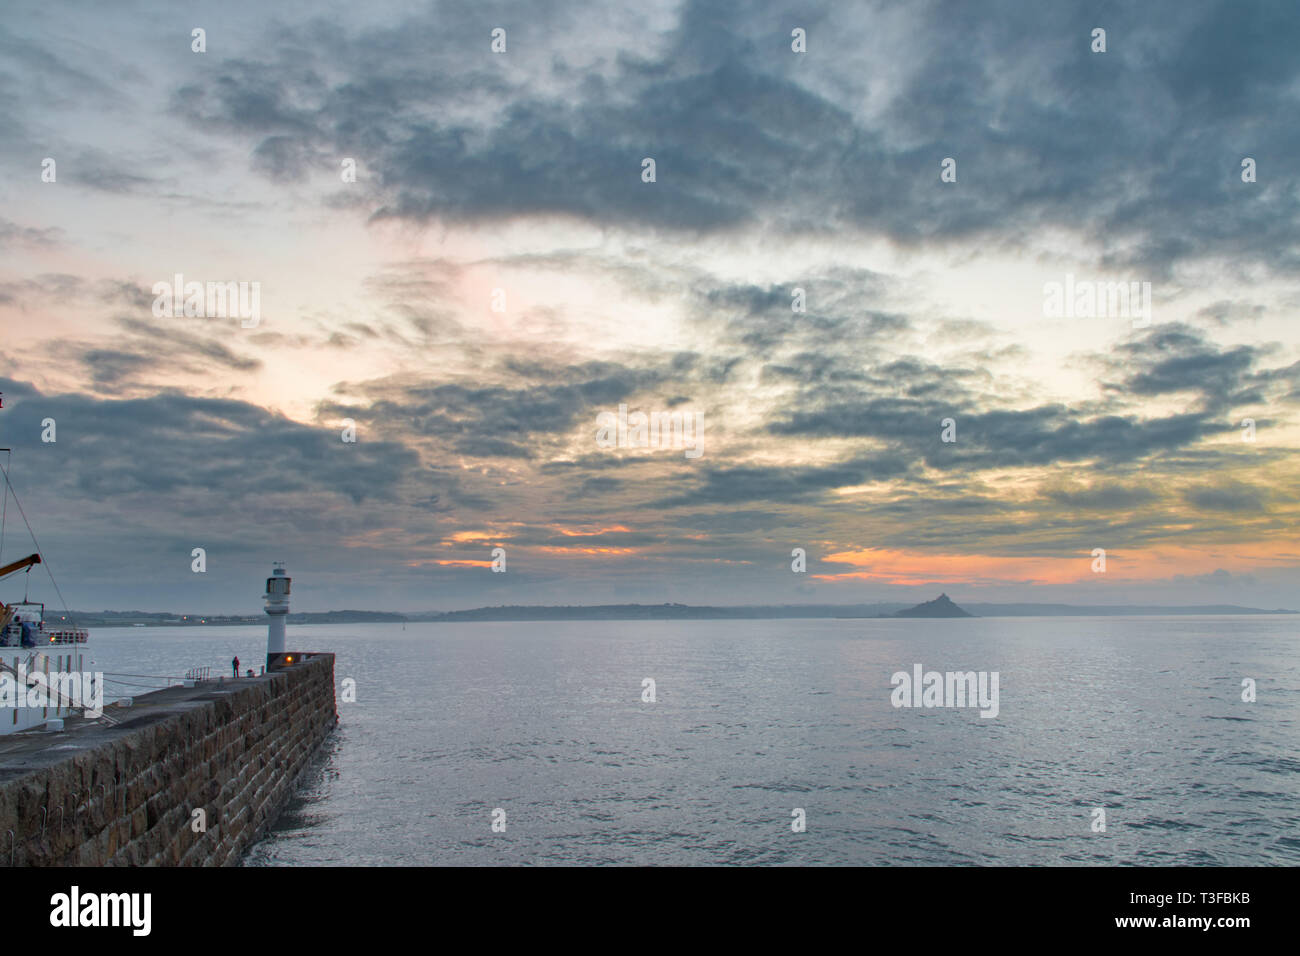 Penzance, Cornwall, UK. 9th Apr, 2019. UK Weather. It was mild and warm for the sunrise at Penzance this morning. Early morning clouds soon lifted. Credit: Simon Maycock/Alamy Live News Stock Photo